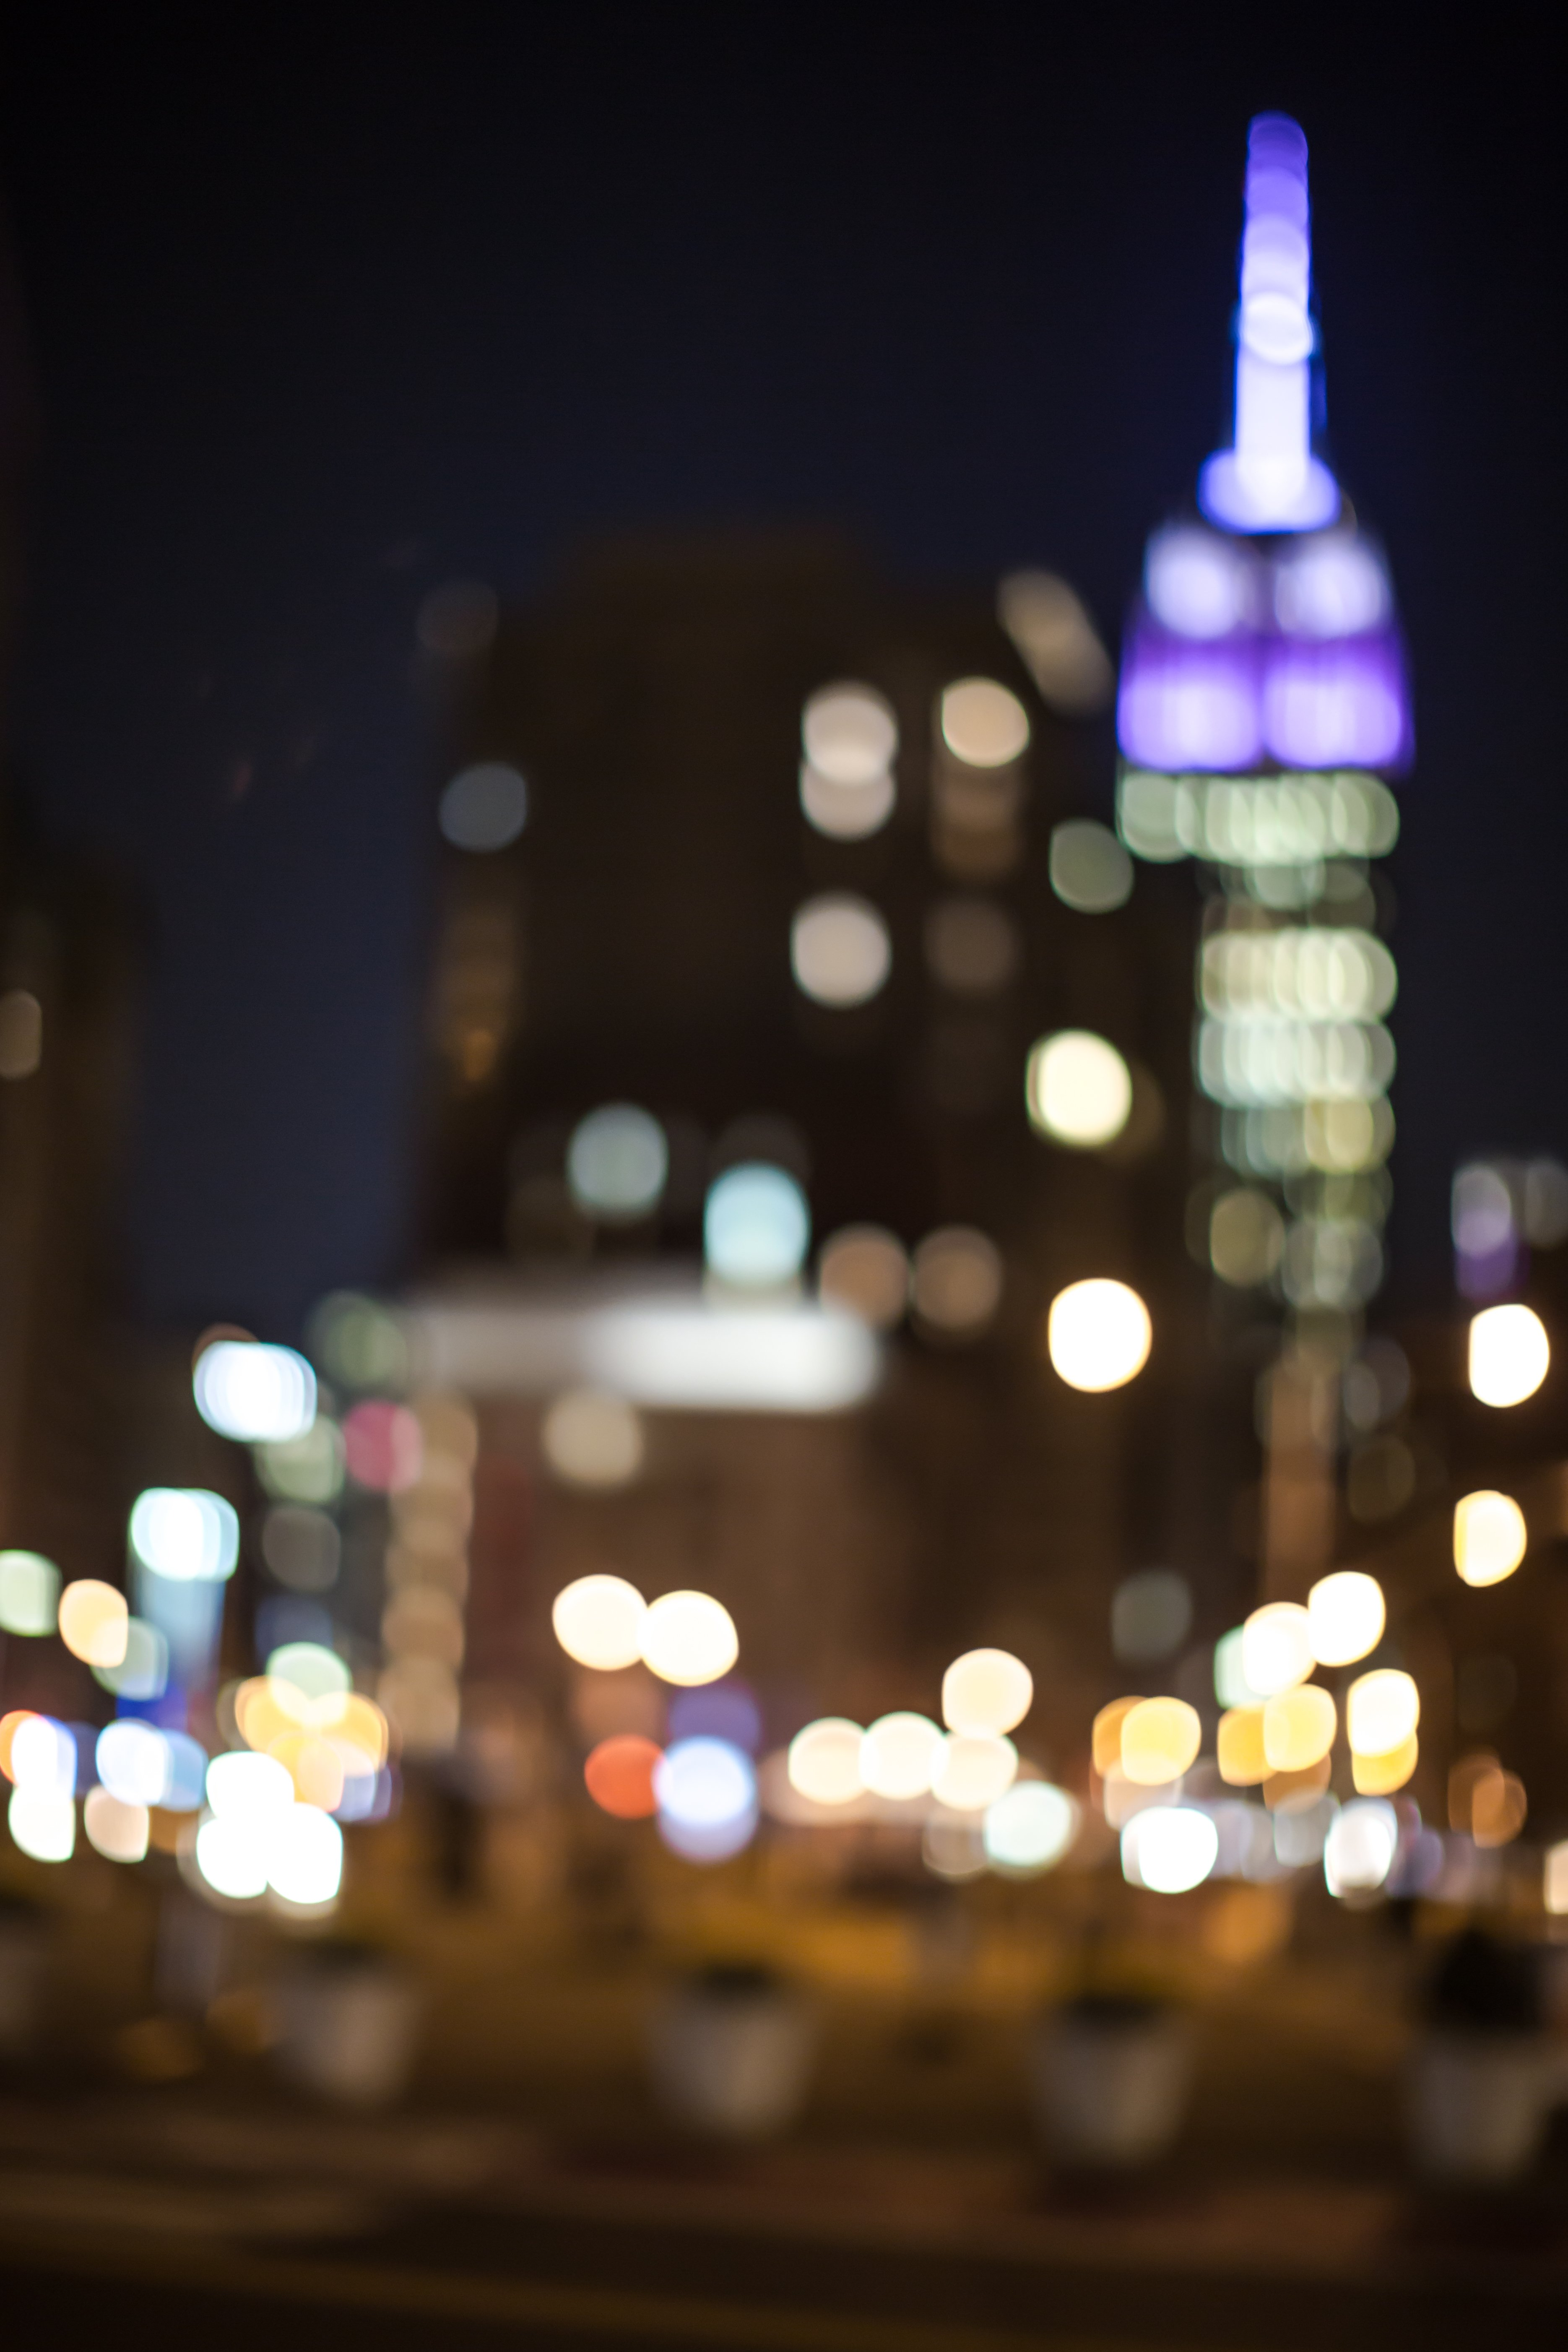 Blurred street at night example image 1